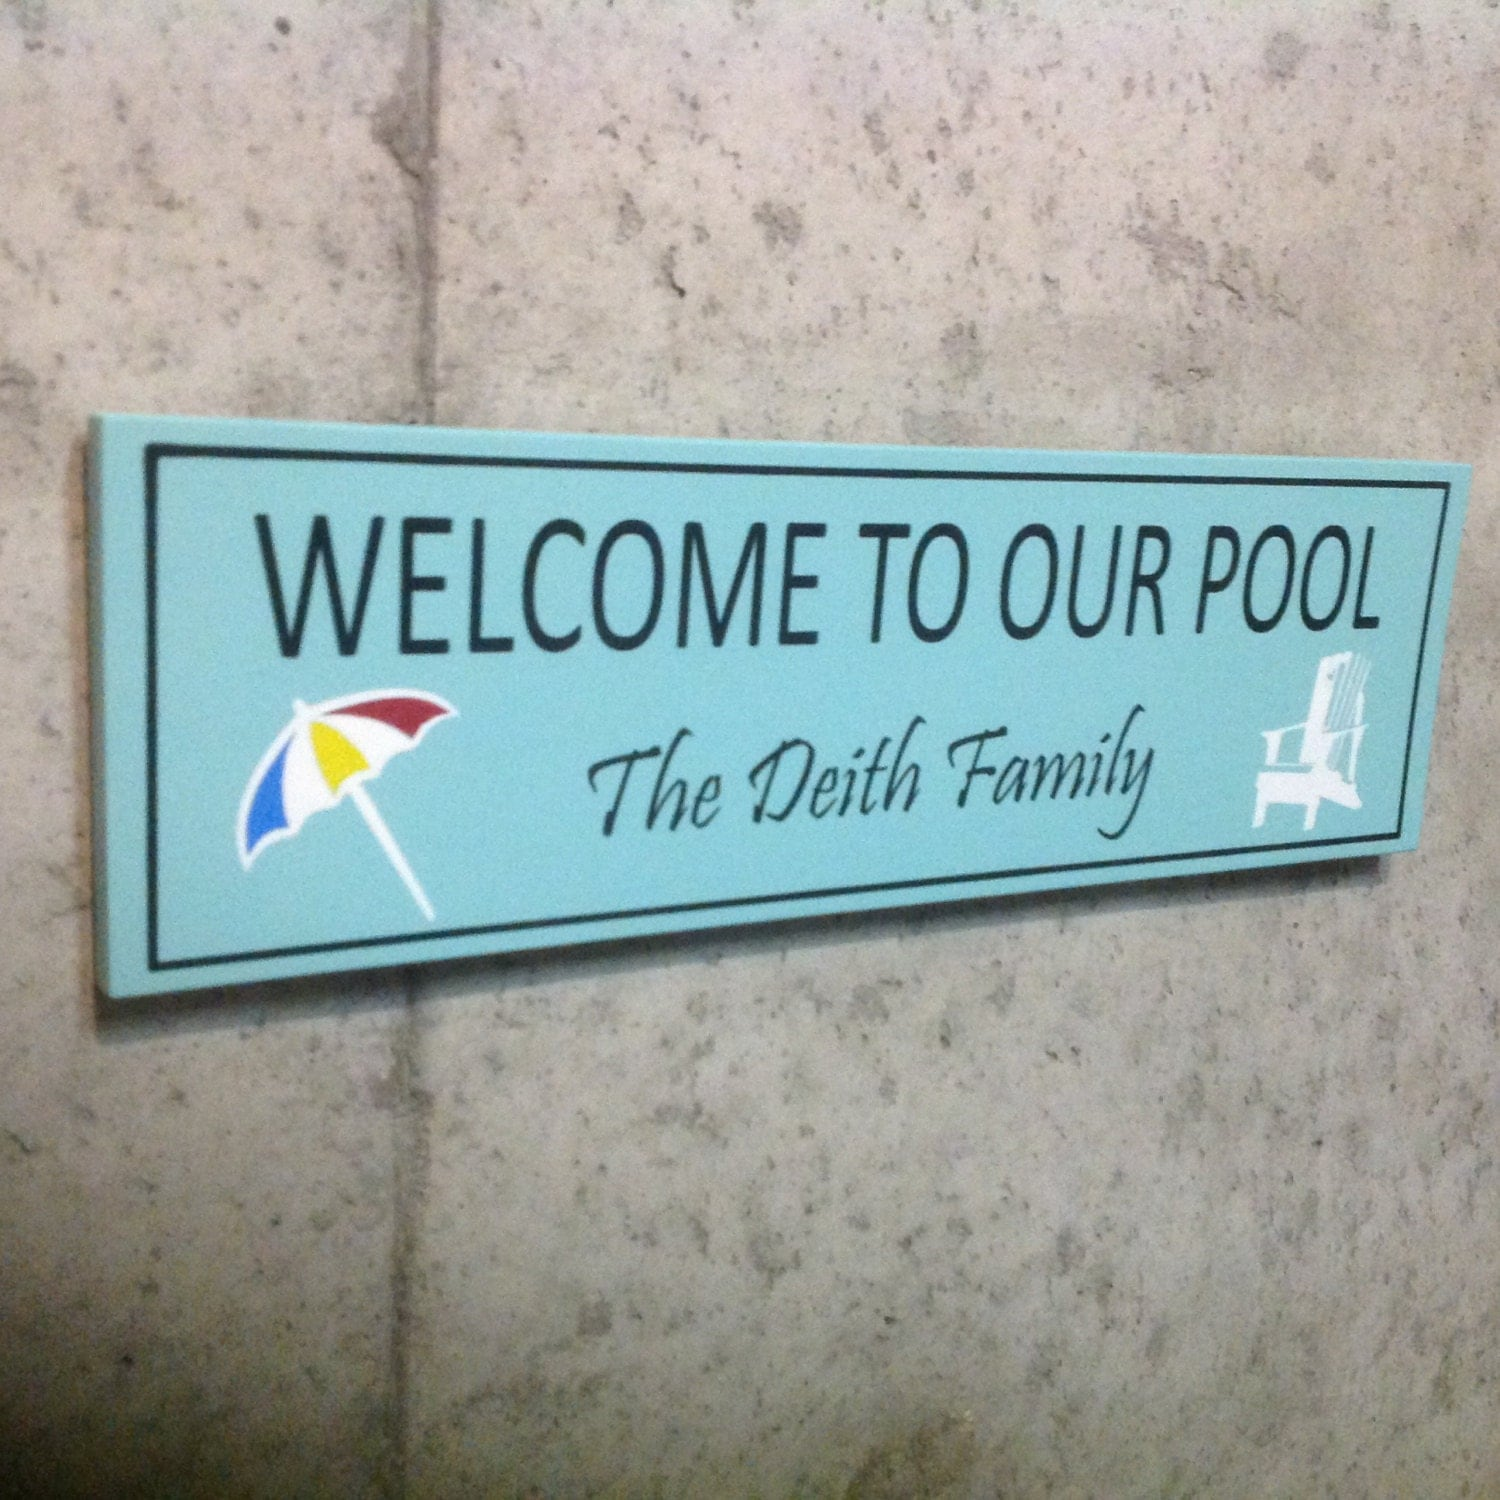 Wooden Signs Home Decor: Welcome To Our Pool Signs Custom Wooden Sign Home Decor Wood